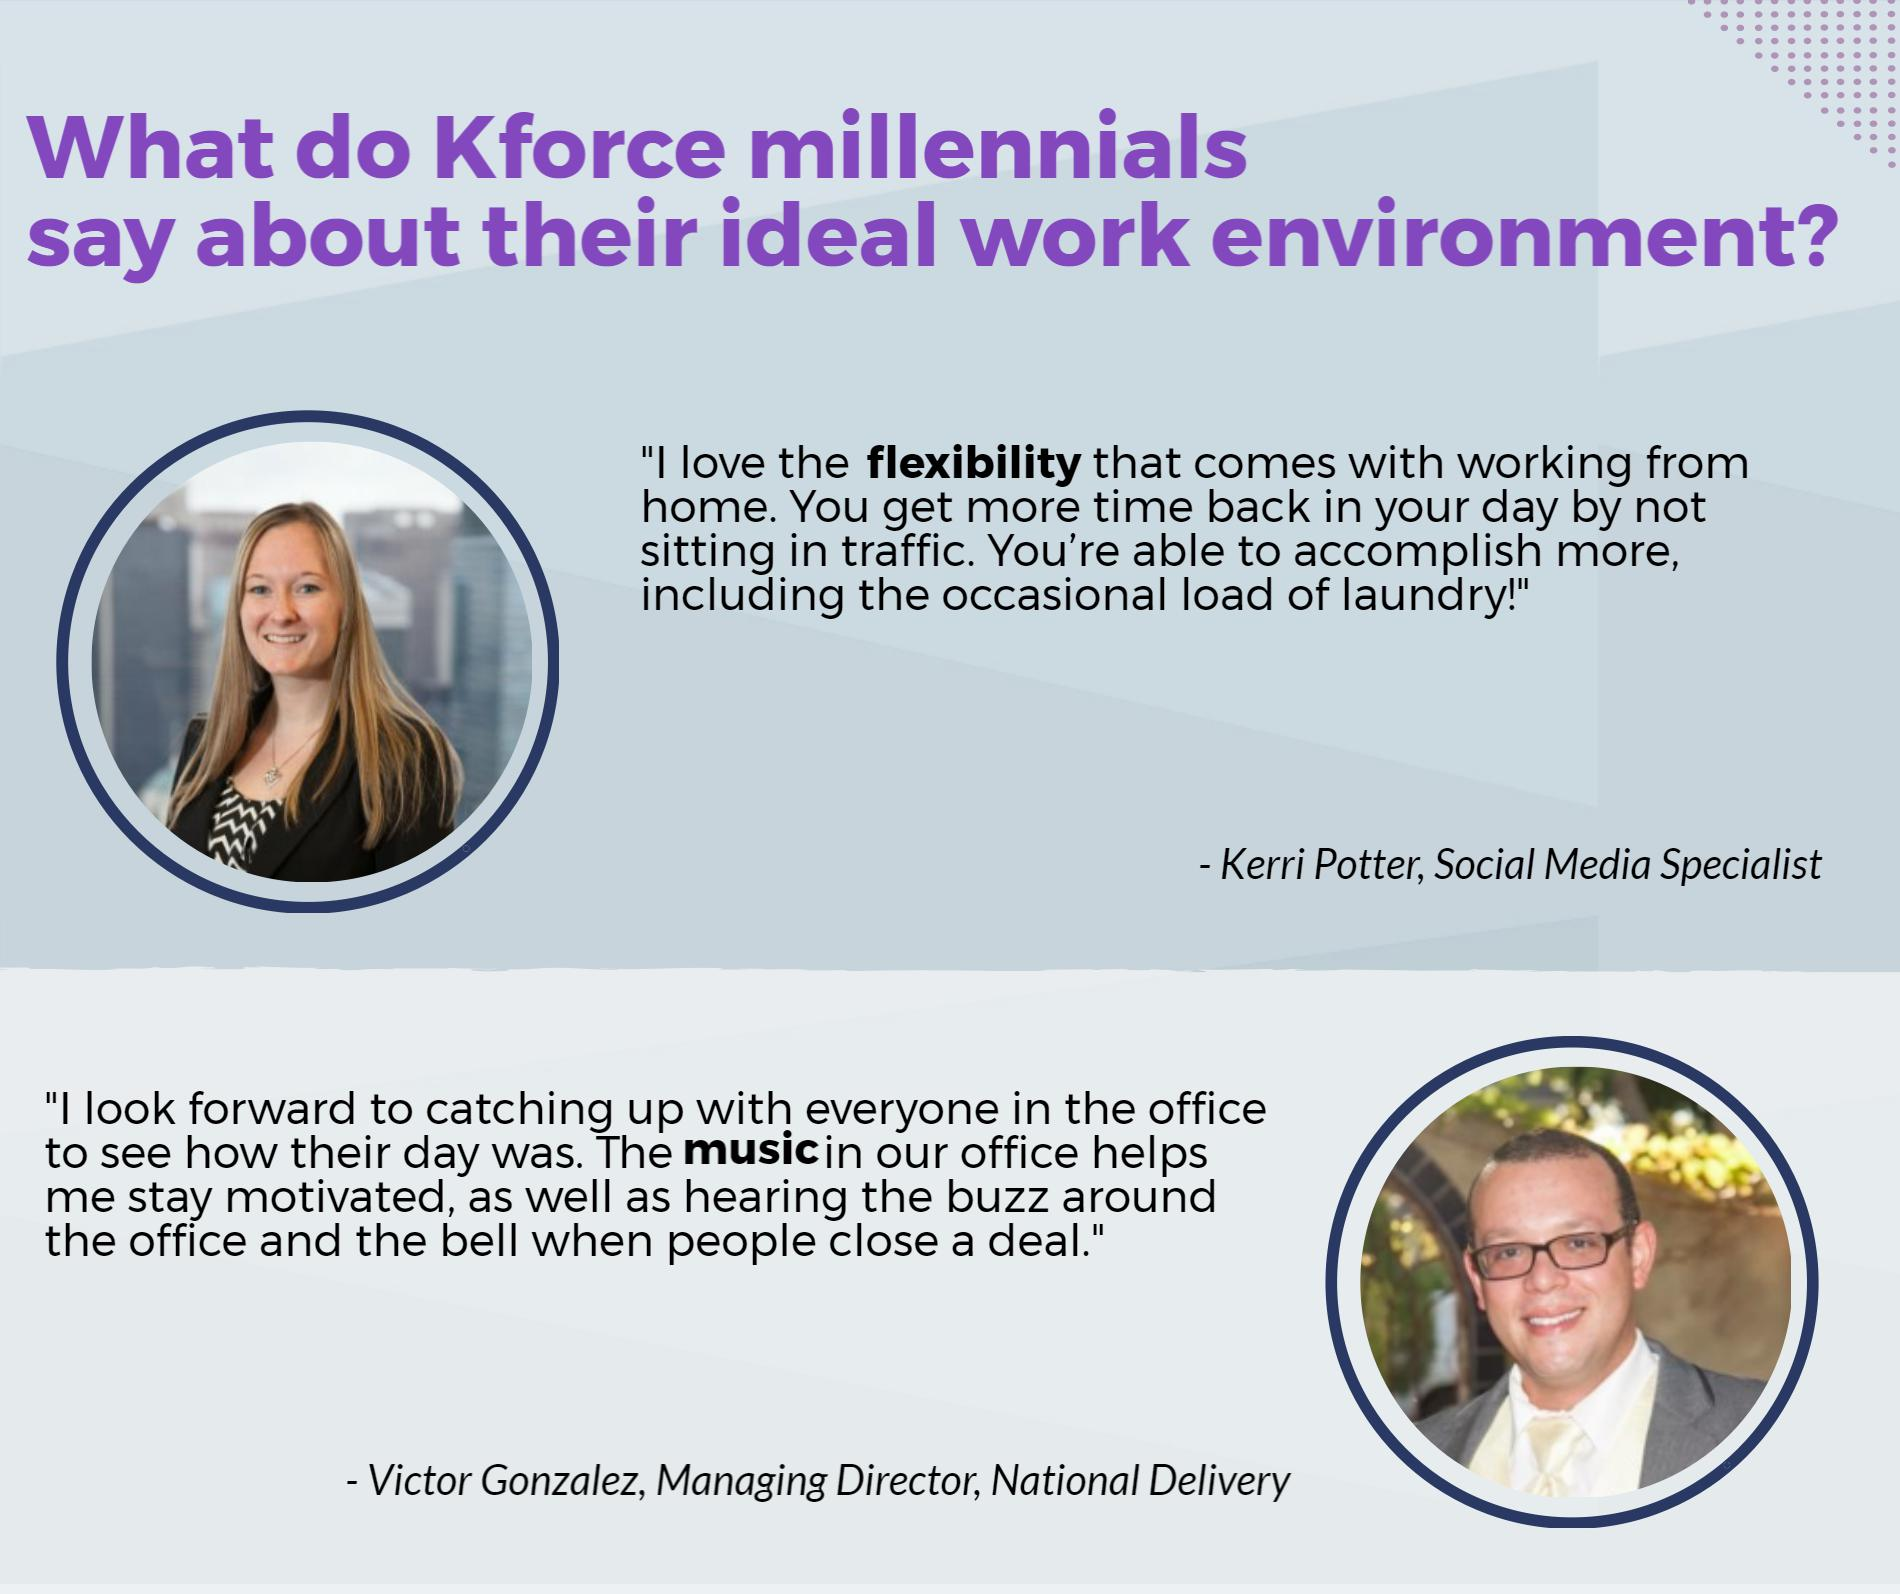 Millennials ideal workplace- here's what it is!